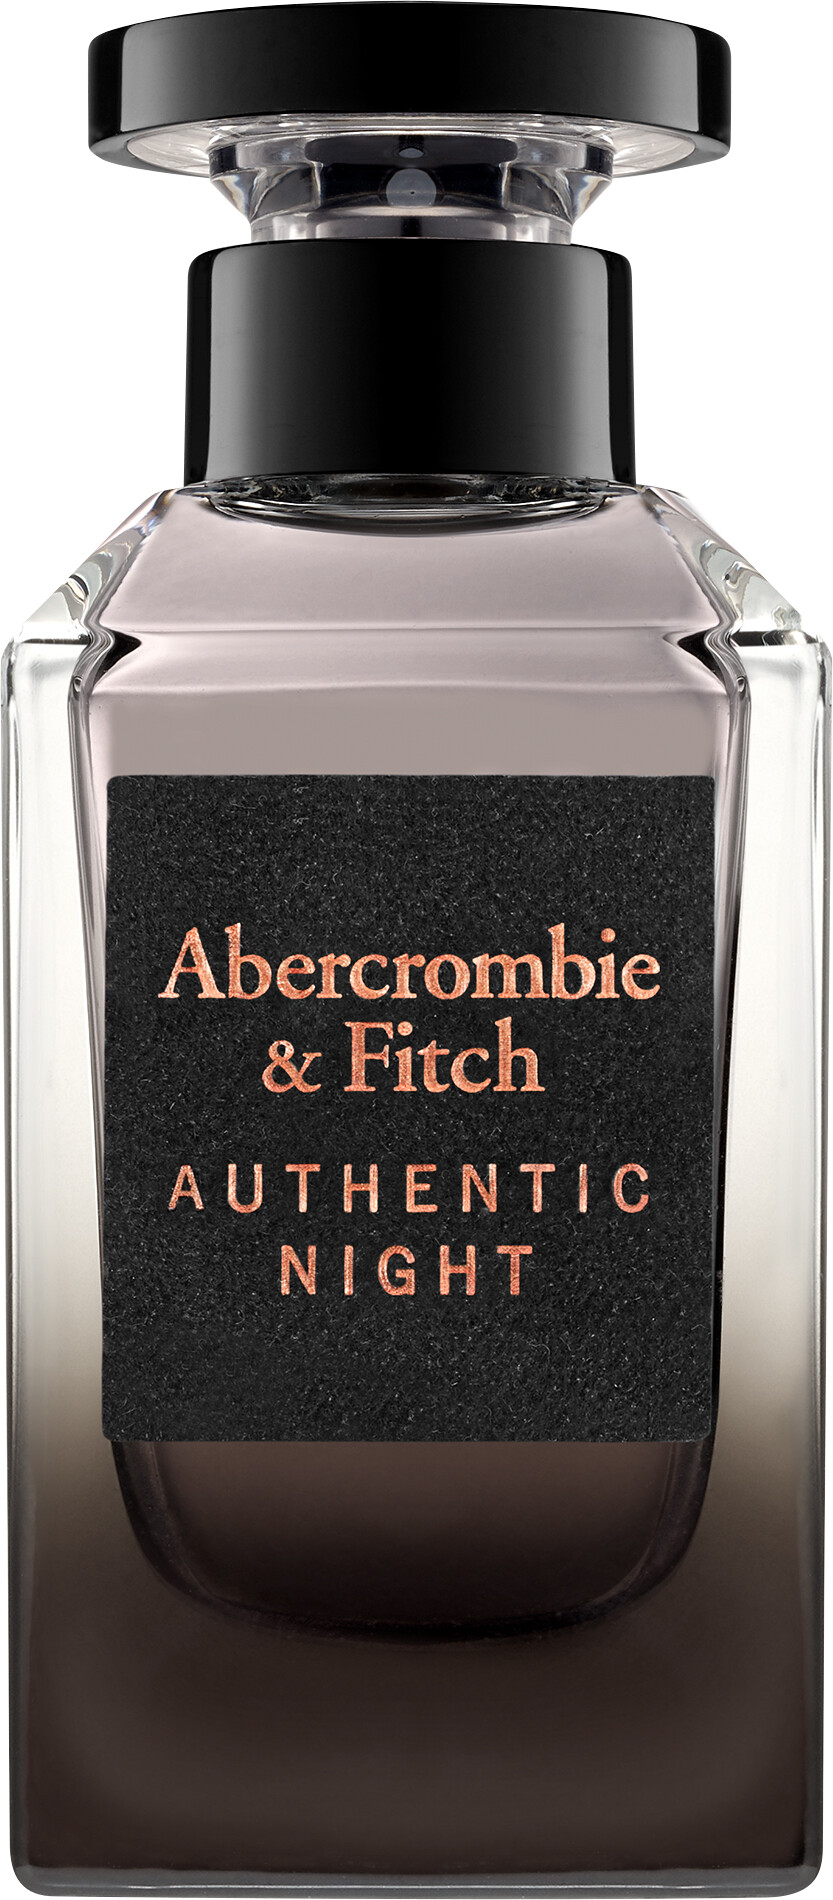 Fragrance Abercrombie & Fitch Authentic Night Eau de Toilette